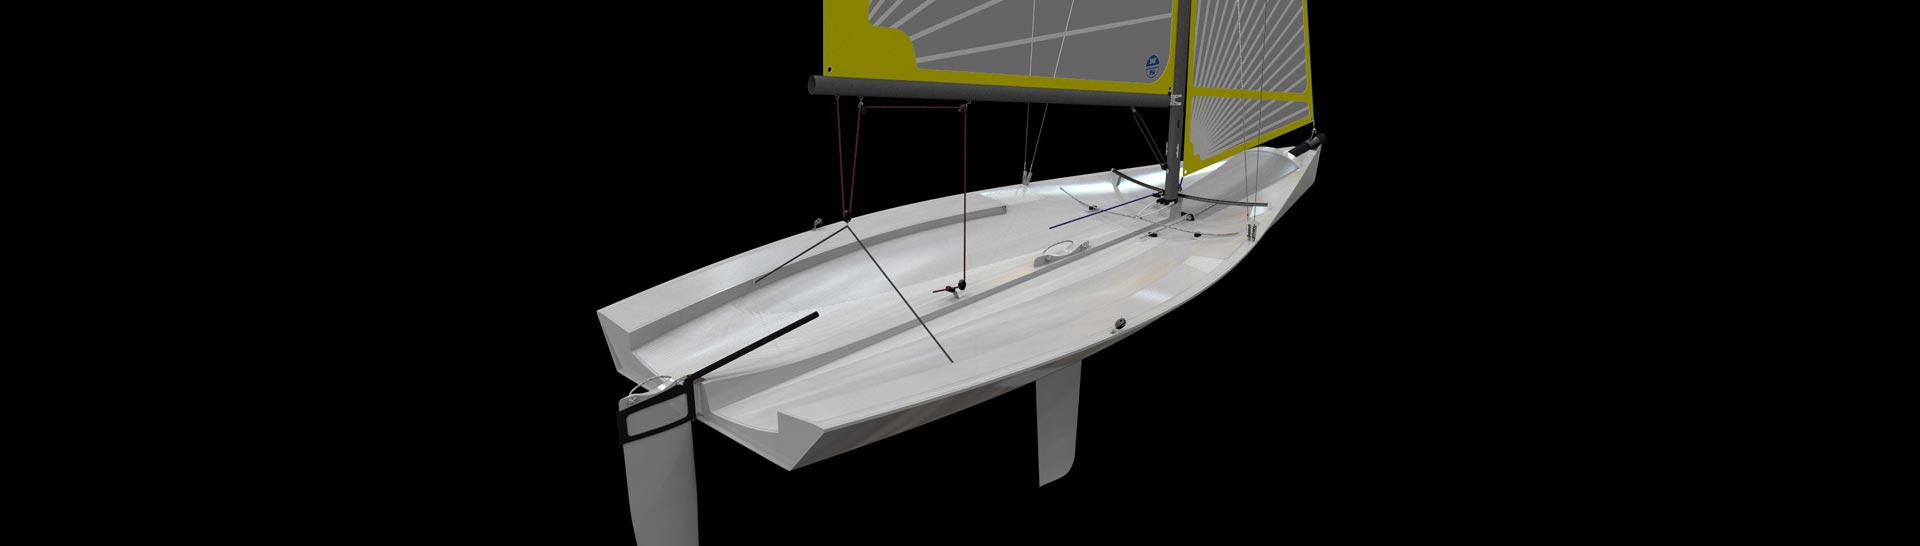 Sailboat, planing dinghy, one design class, dériveur